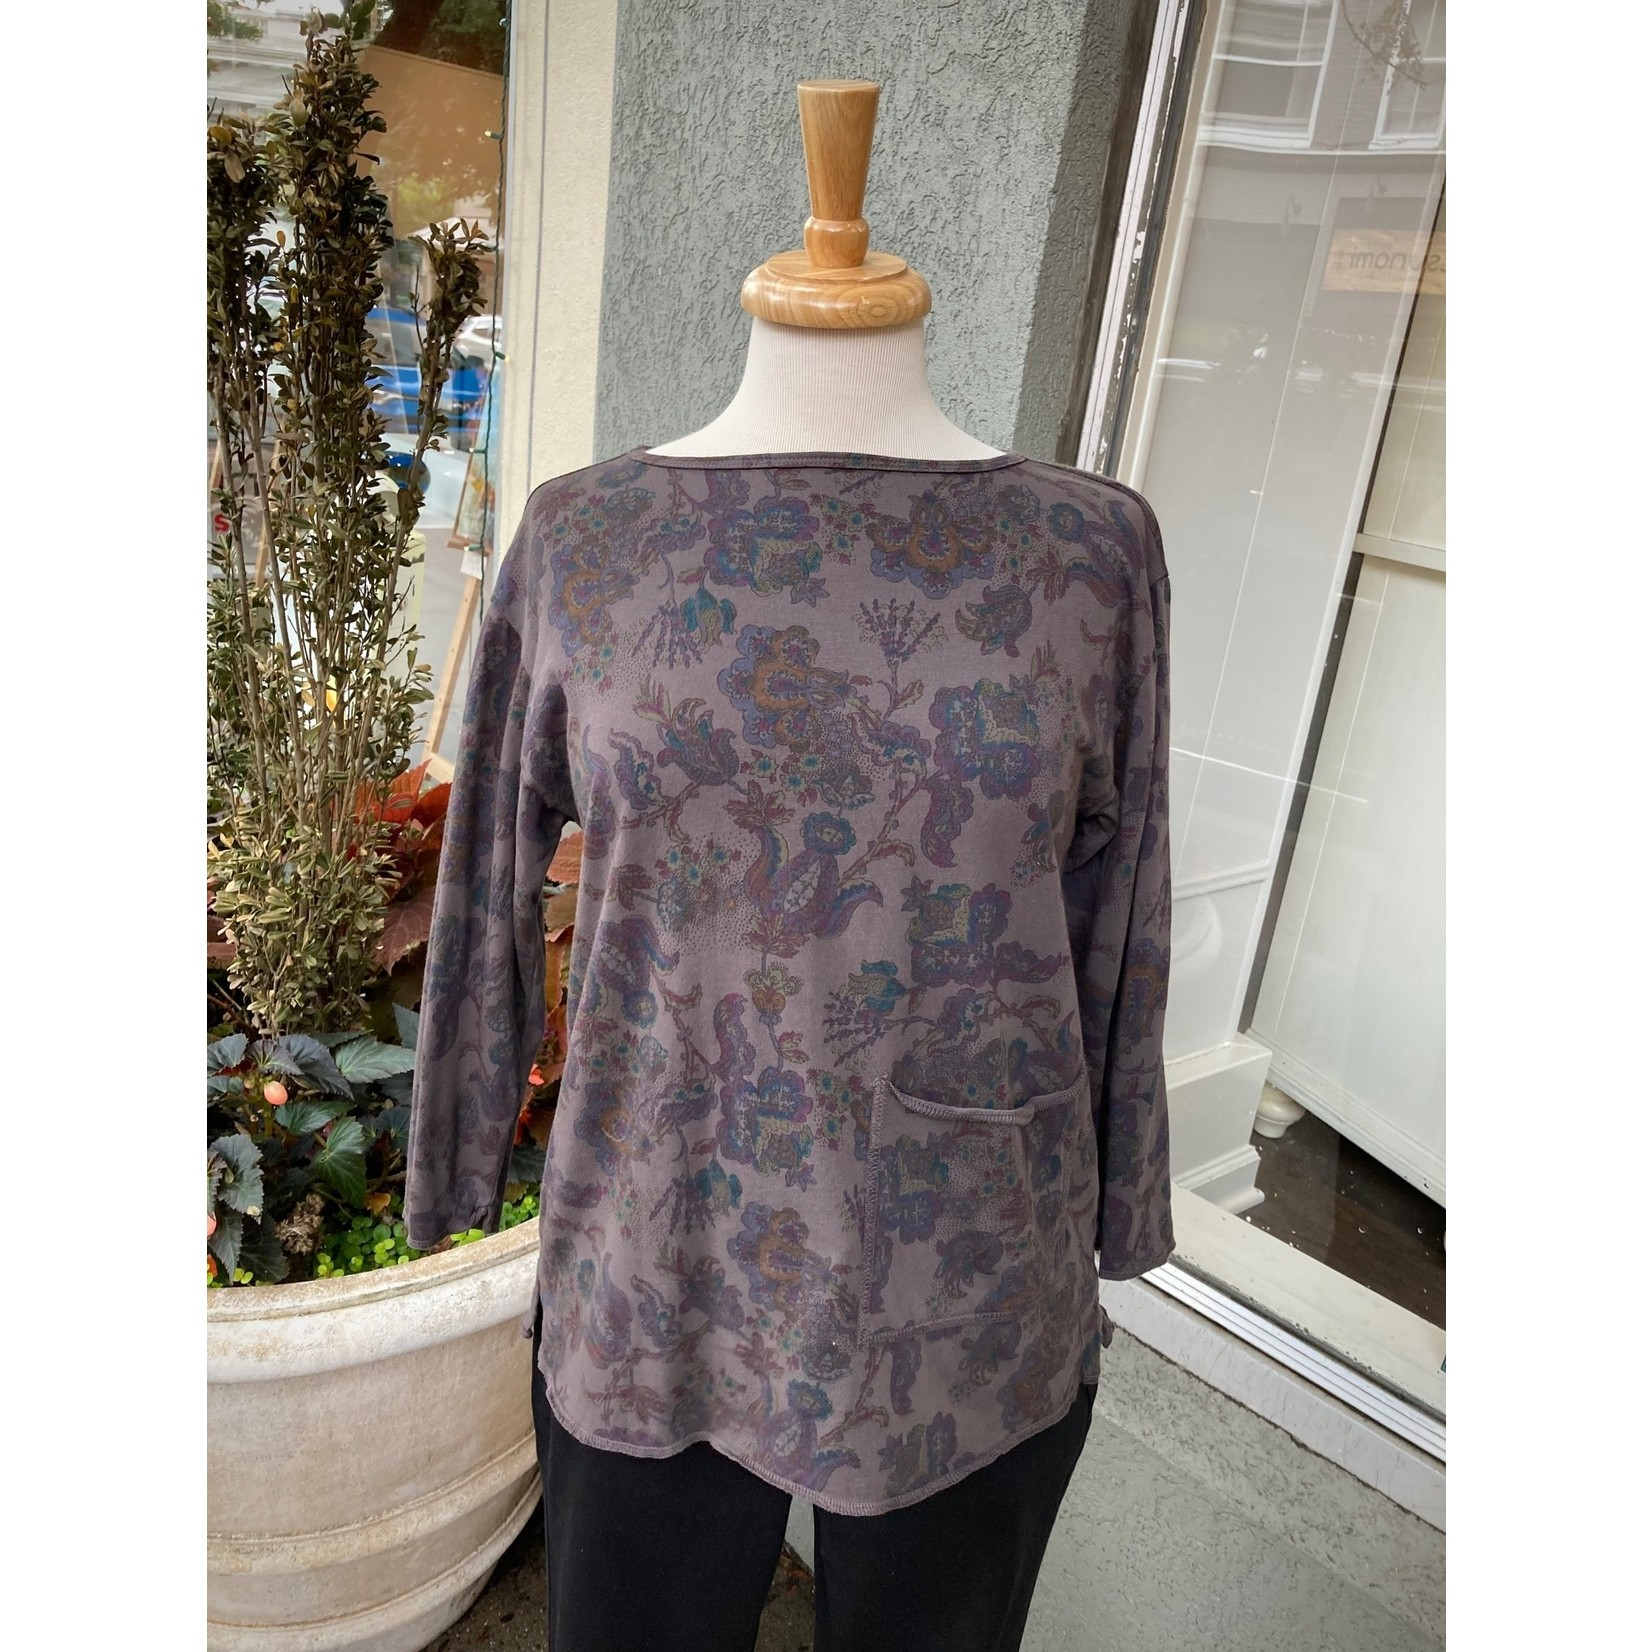 Color Me Cotton Round Neck Print Top w/ Pocket in Chocolate